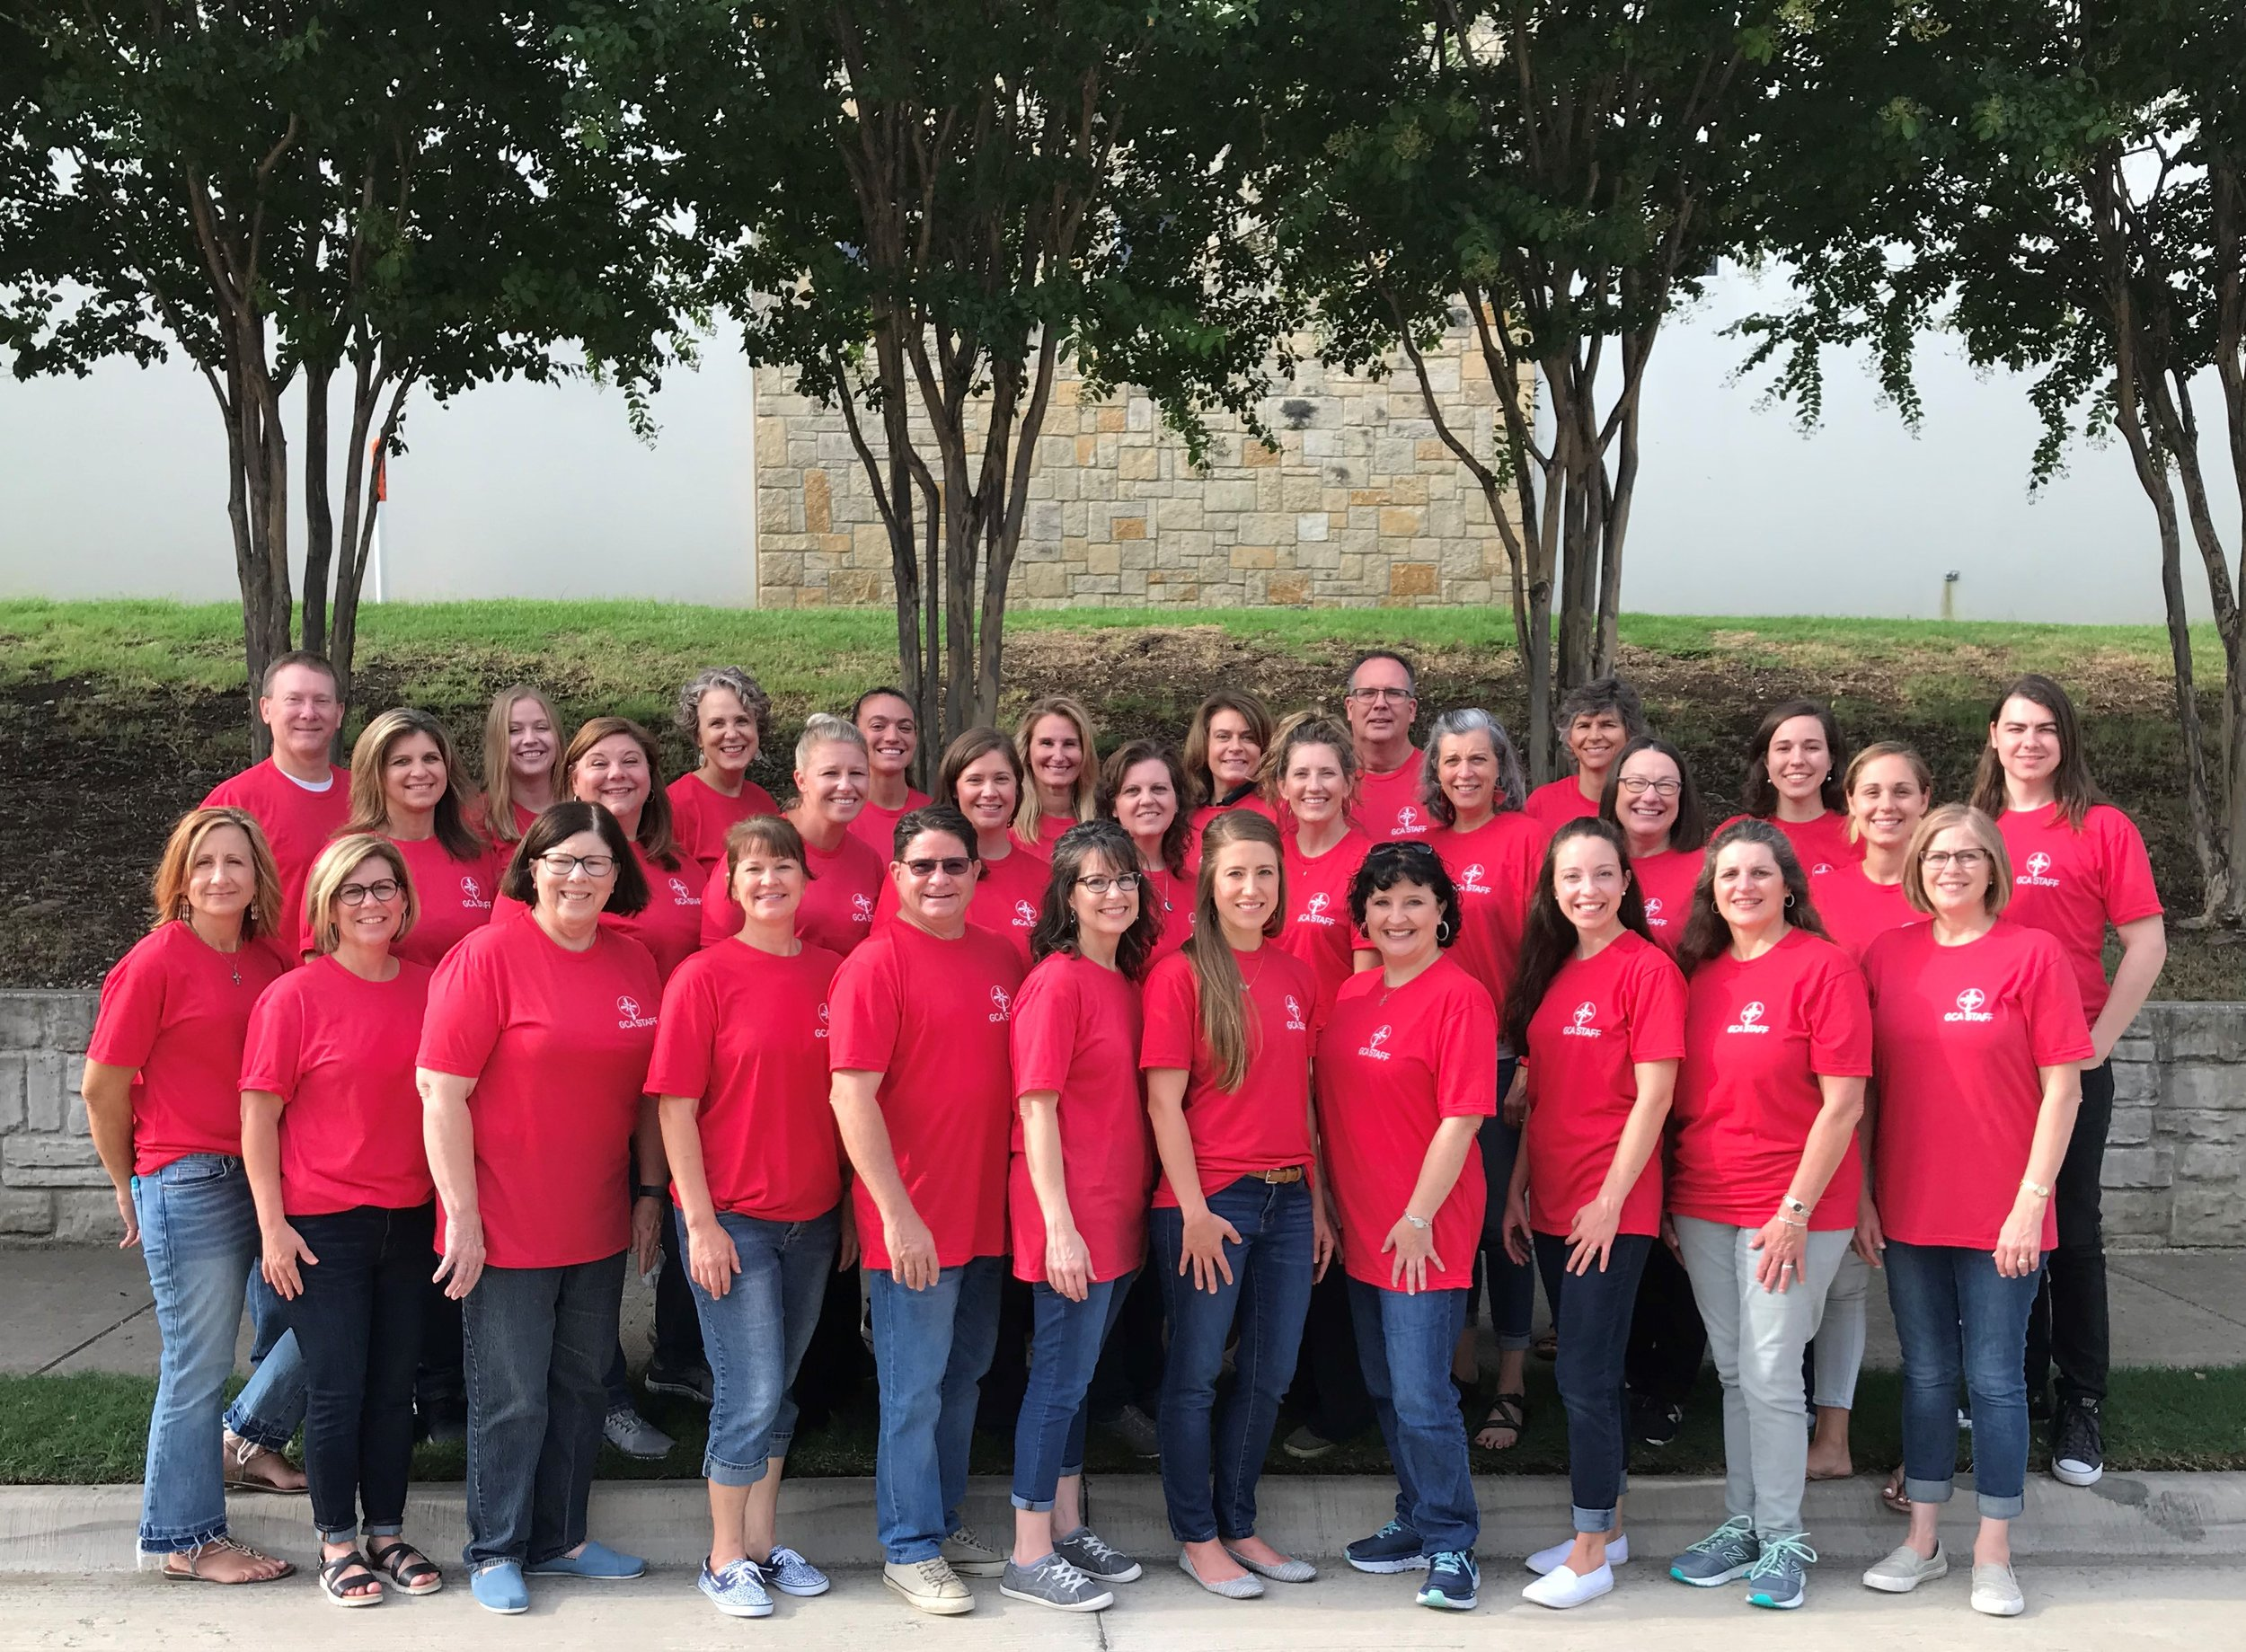 Our 2019-2020 Faculty and Staff:  L-R first row: Shannon Rowell, Diane Massey, Sondra Reid, Cari McCorkle, Brad Elledge, Melanie Burchfiel, Ashleigh Gaulke, Julie Rhine, Mary Buri, Kim Slaughter, Amy Smith. 2nd row: Omega Mejia, Shannon Behrman, Angela Grassmuck, Autumn Schafer, Christi Romeo, Julie Saunders, Rae Kramer, Sally Rodgers, Joanna Chipman. 3rd row: Michael McCorkle, Haley Edwards, Kim Martin, Bethany Paul, Julie Buman, Denise Harris, Brian Smith, Elmarie Meintjes, Tiffany Cook, Christian Cook.